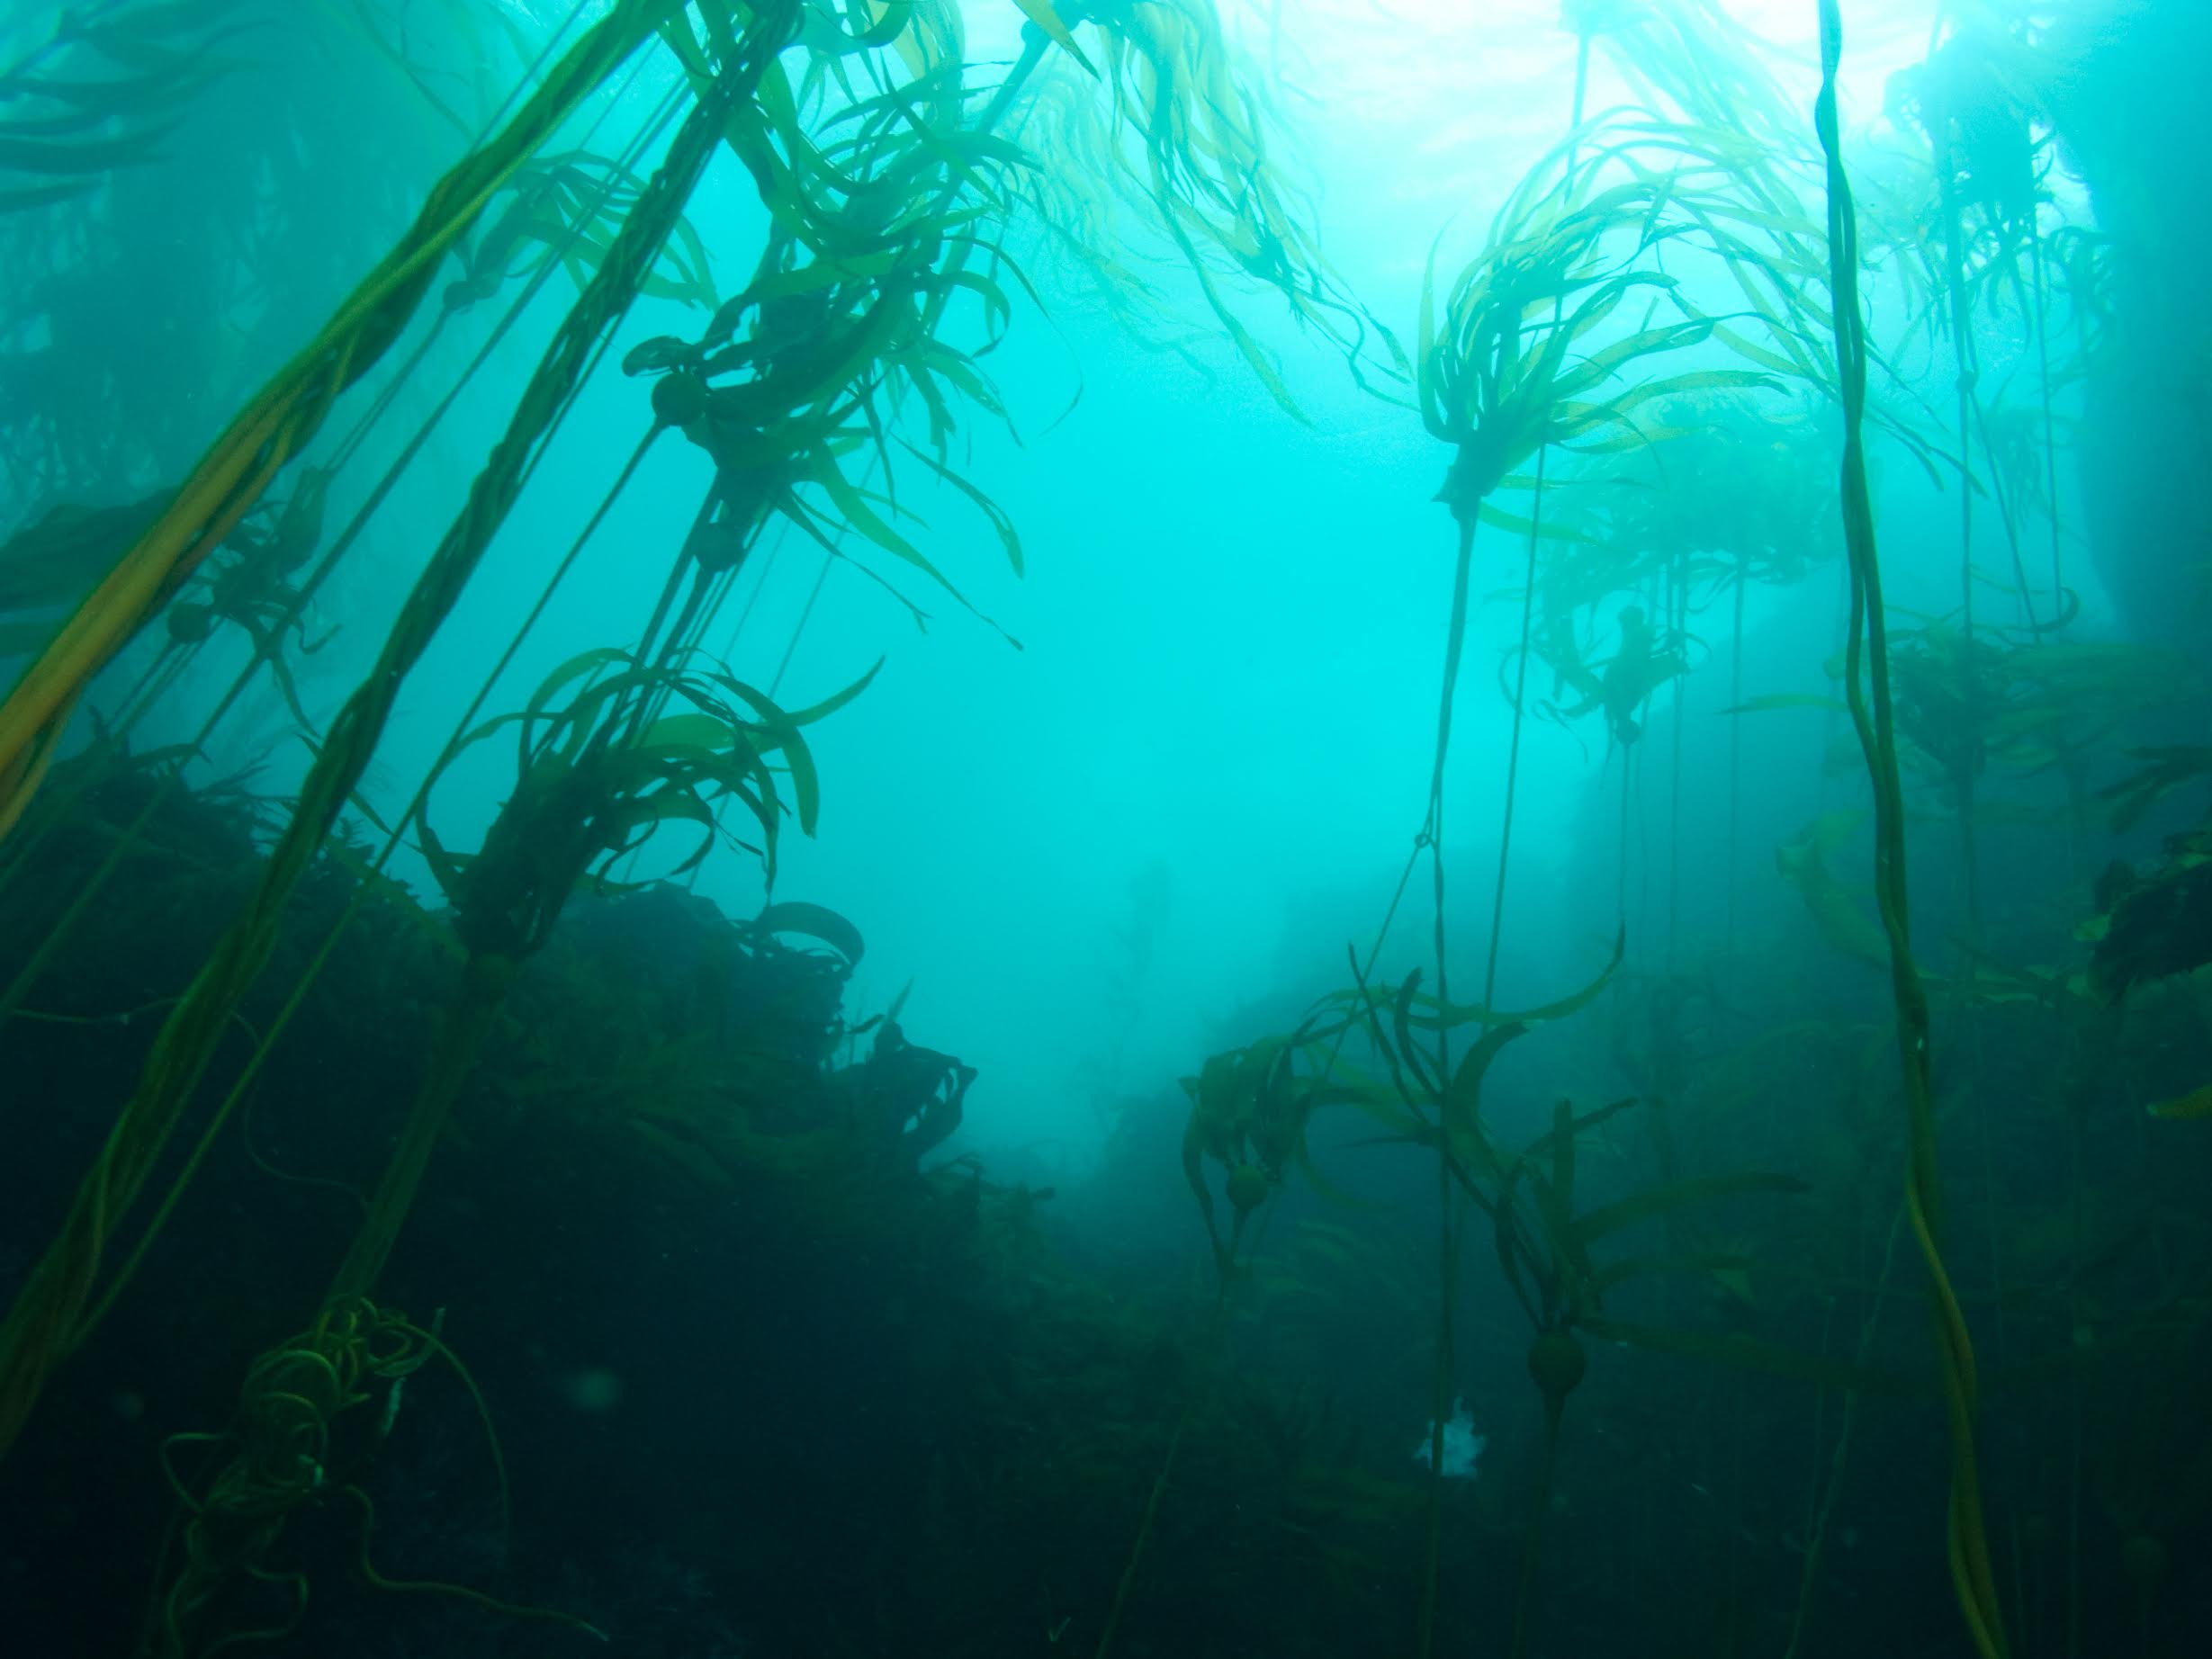 Bull kelp forests provide numerous habitats for nearshore fish and invertebrate species in the Gulf of the Farallones National Marine Sanctuary. (Jared Figurski, UCSC)